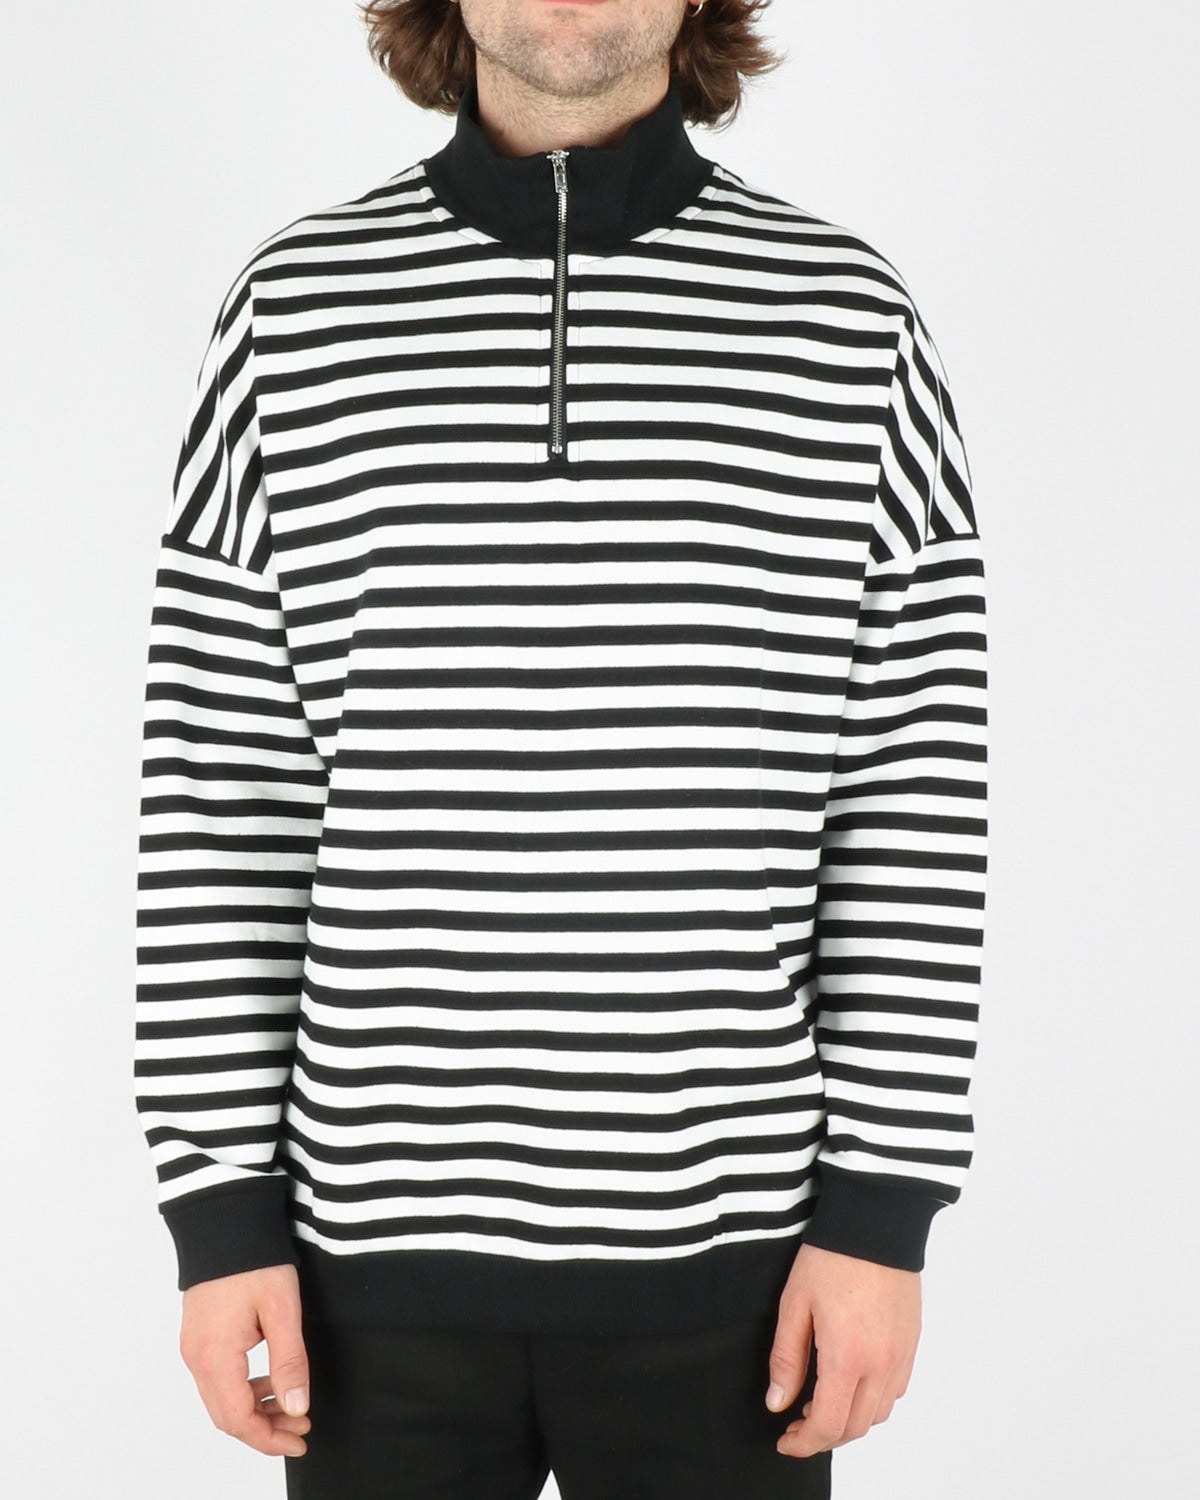 woodbird_sail half zip sweat_white black_1_5